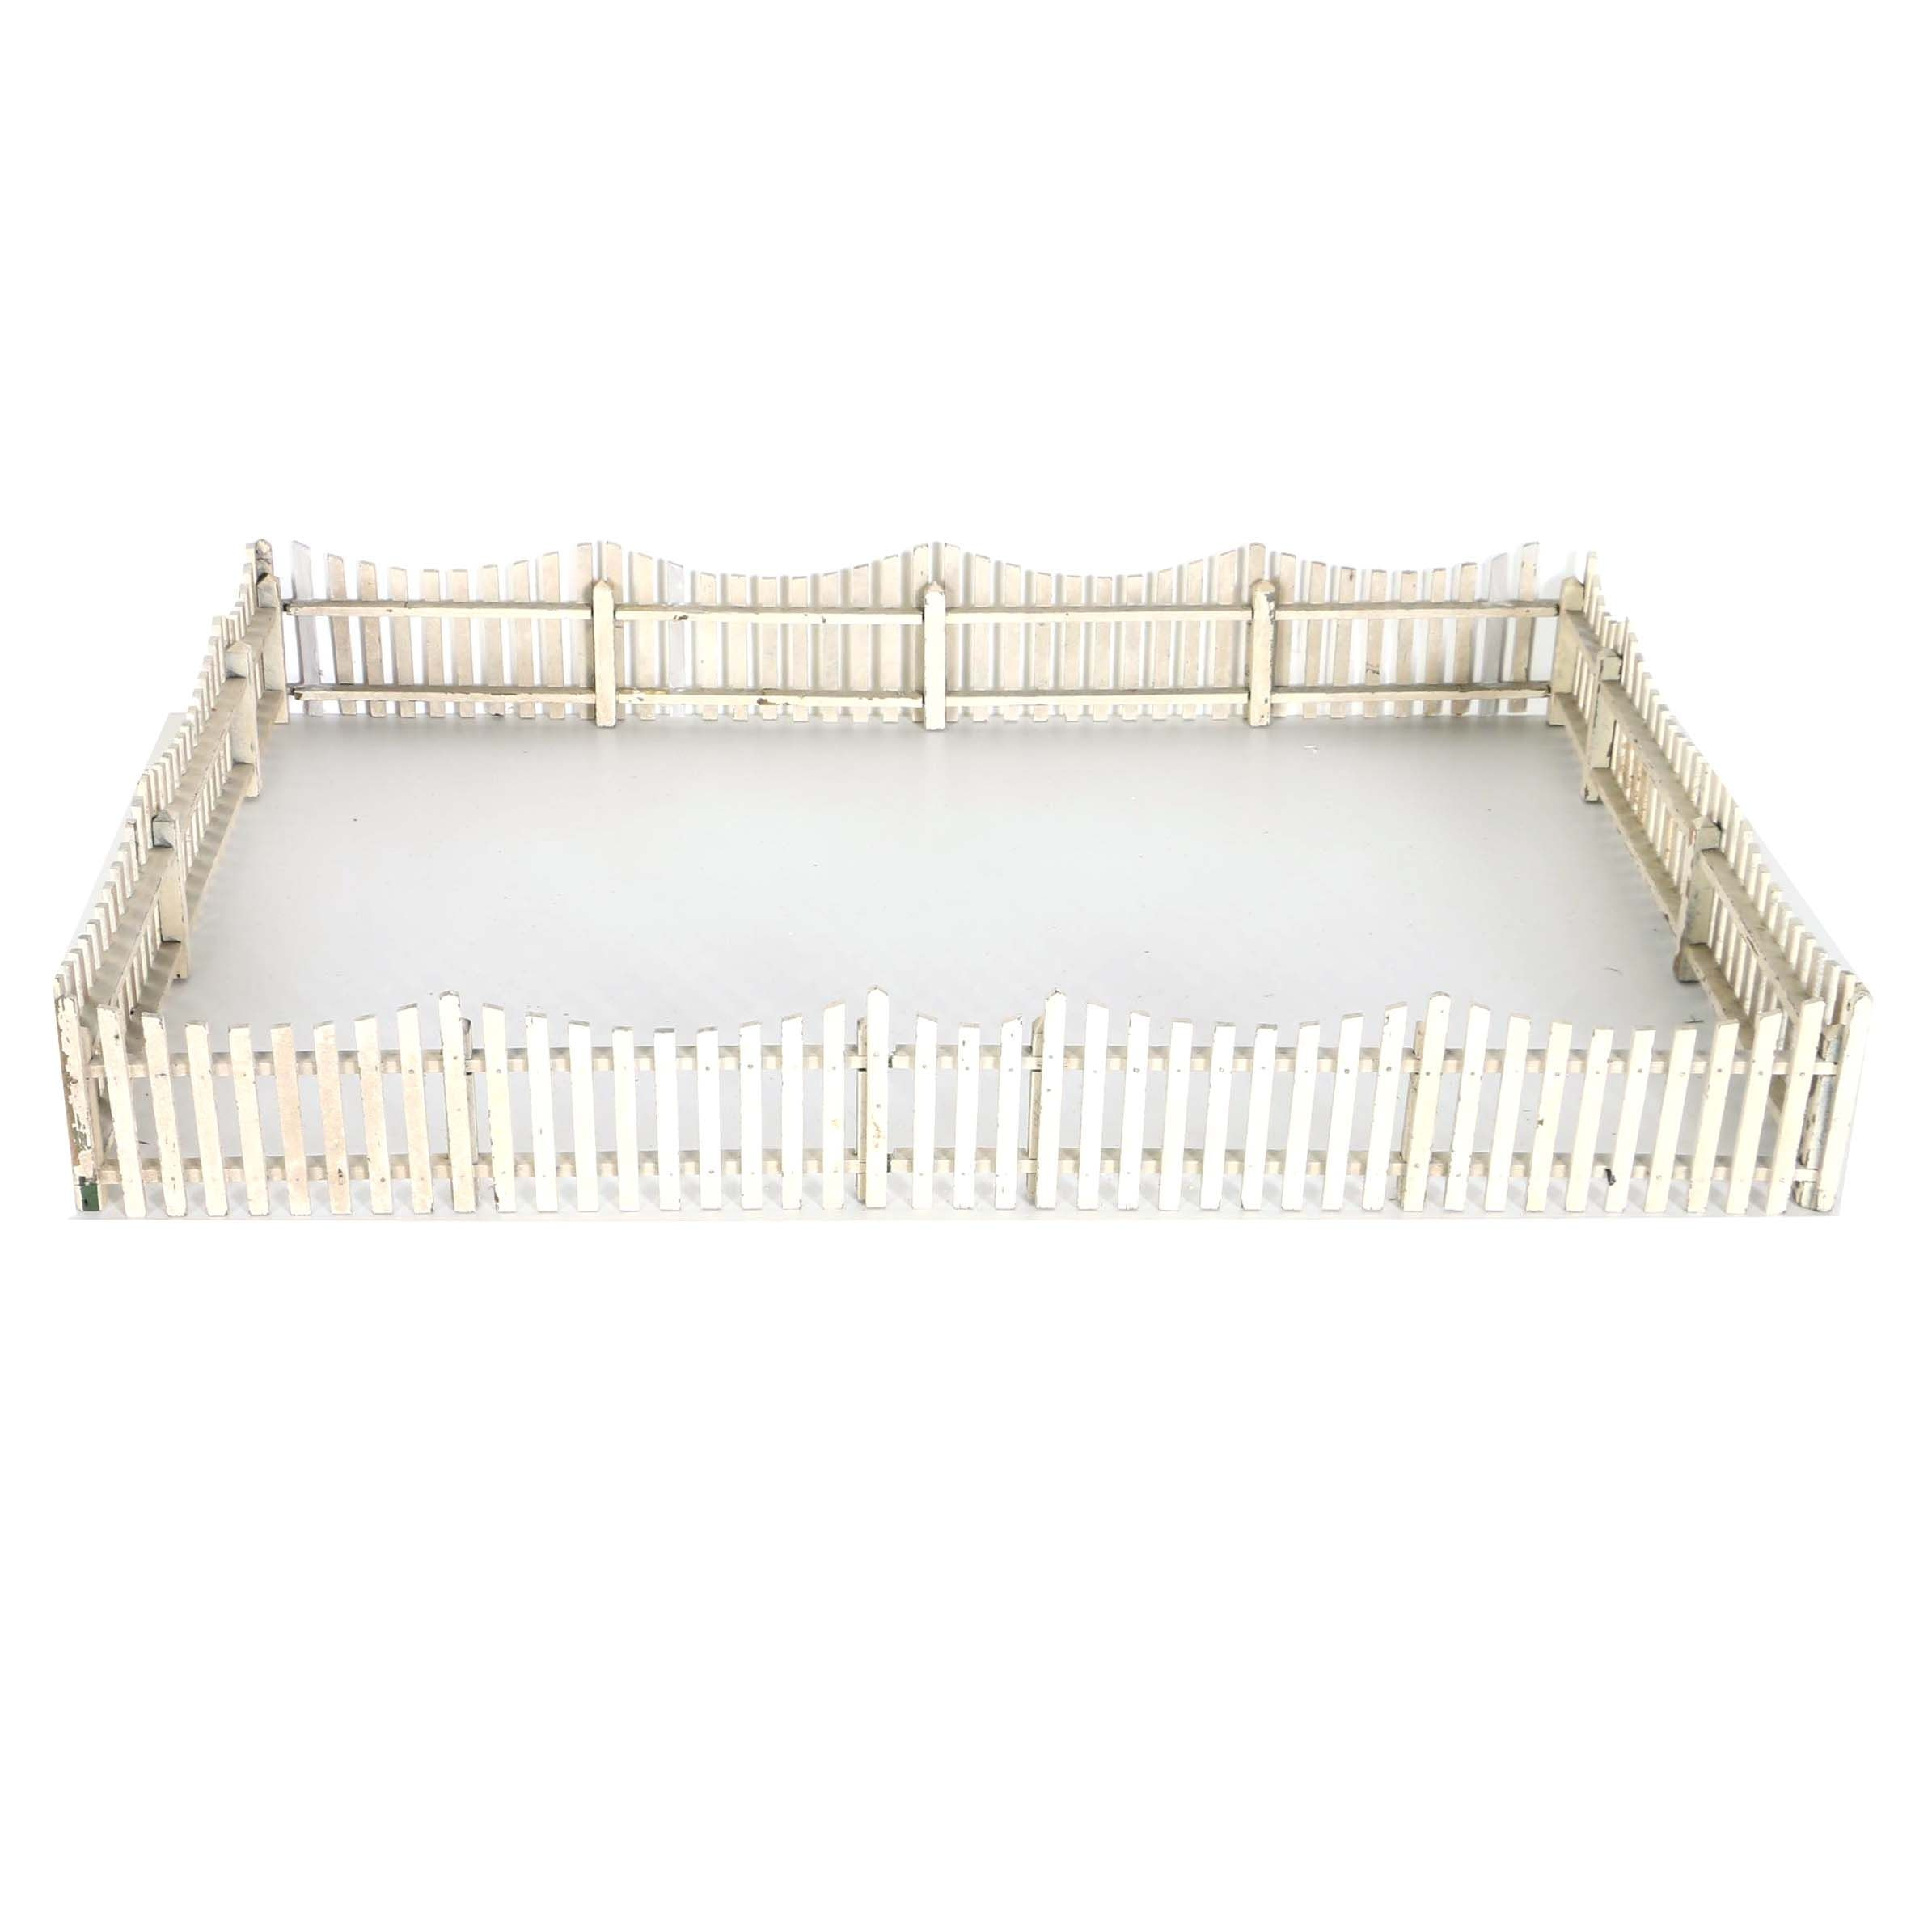 Antique Folk Art White Picket Fencing To Surround Feather Tree